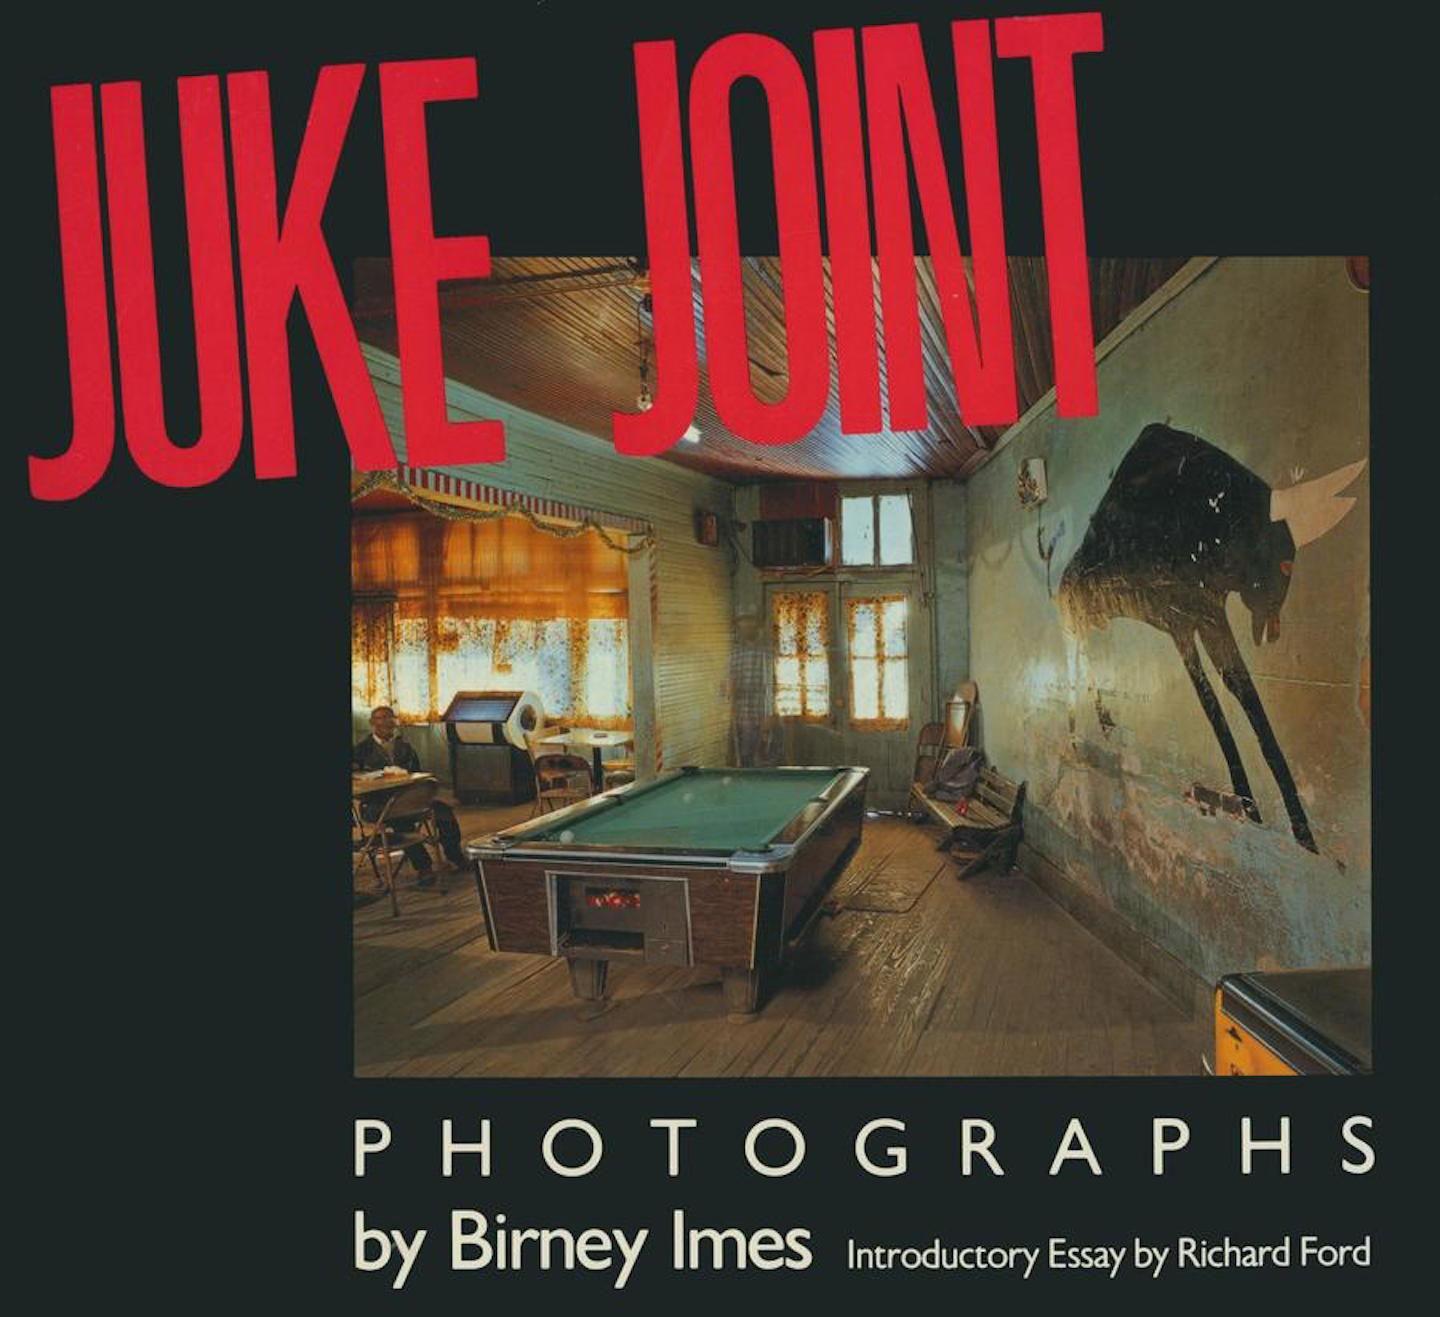 Juke Joint: Photographs by Birney Imes